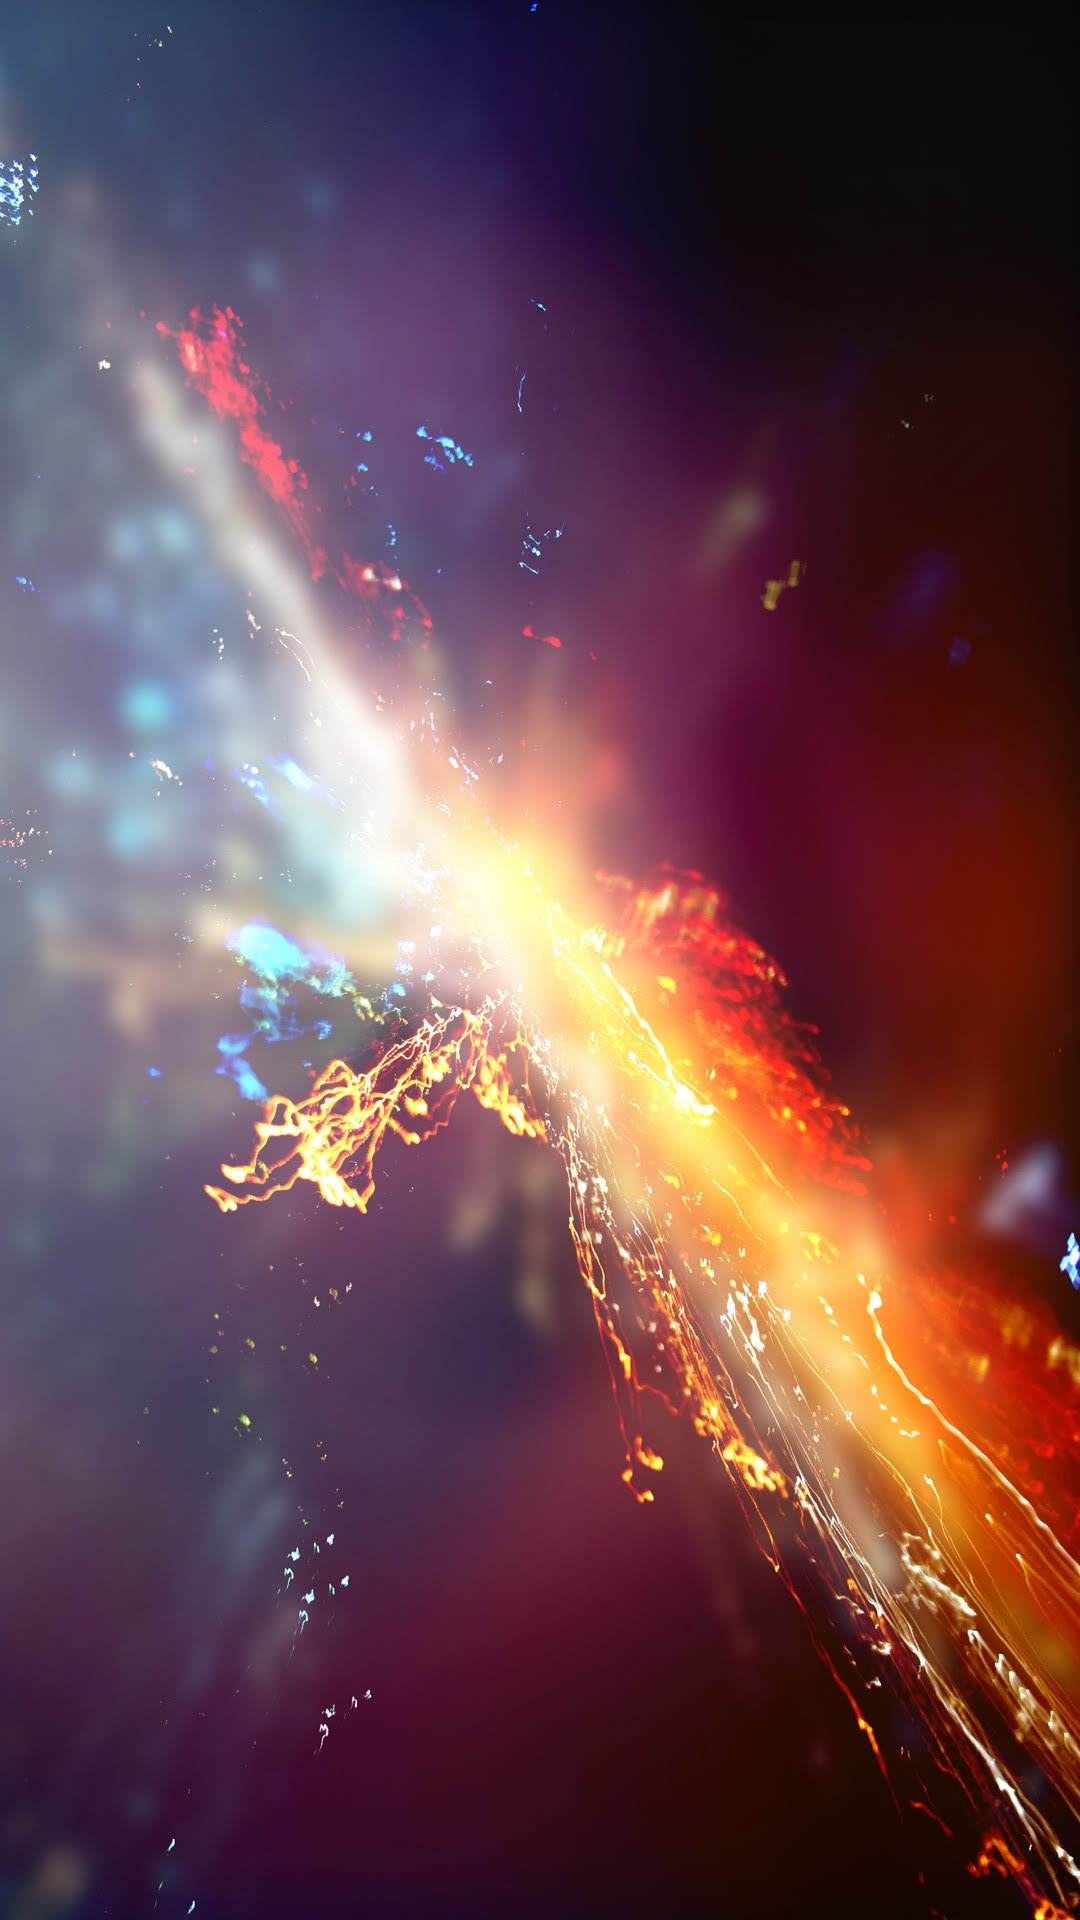 Galaxy S4 Wallpaper with fire and water abstract design in 1080x1920